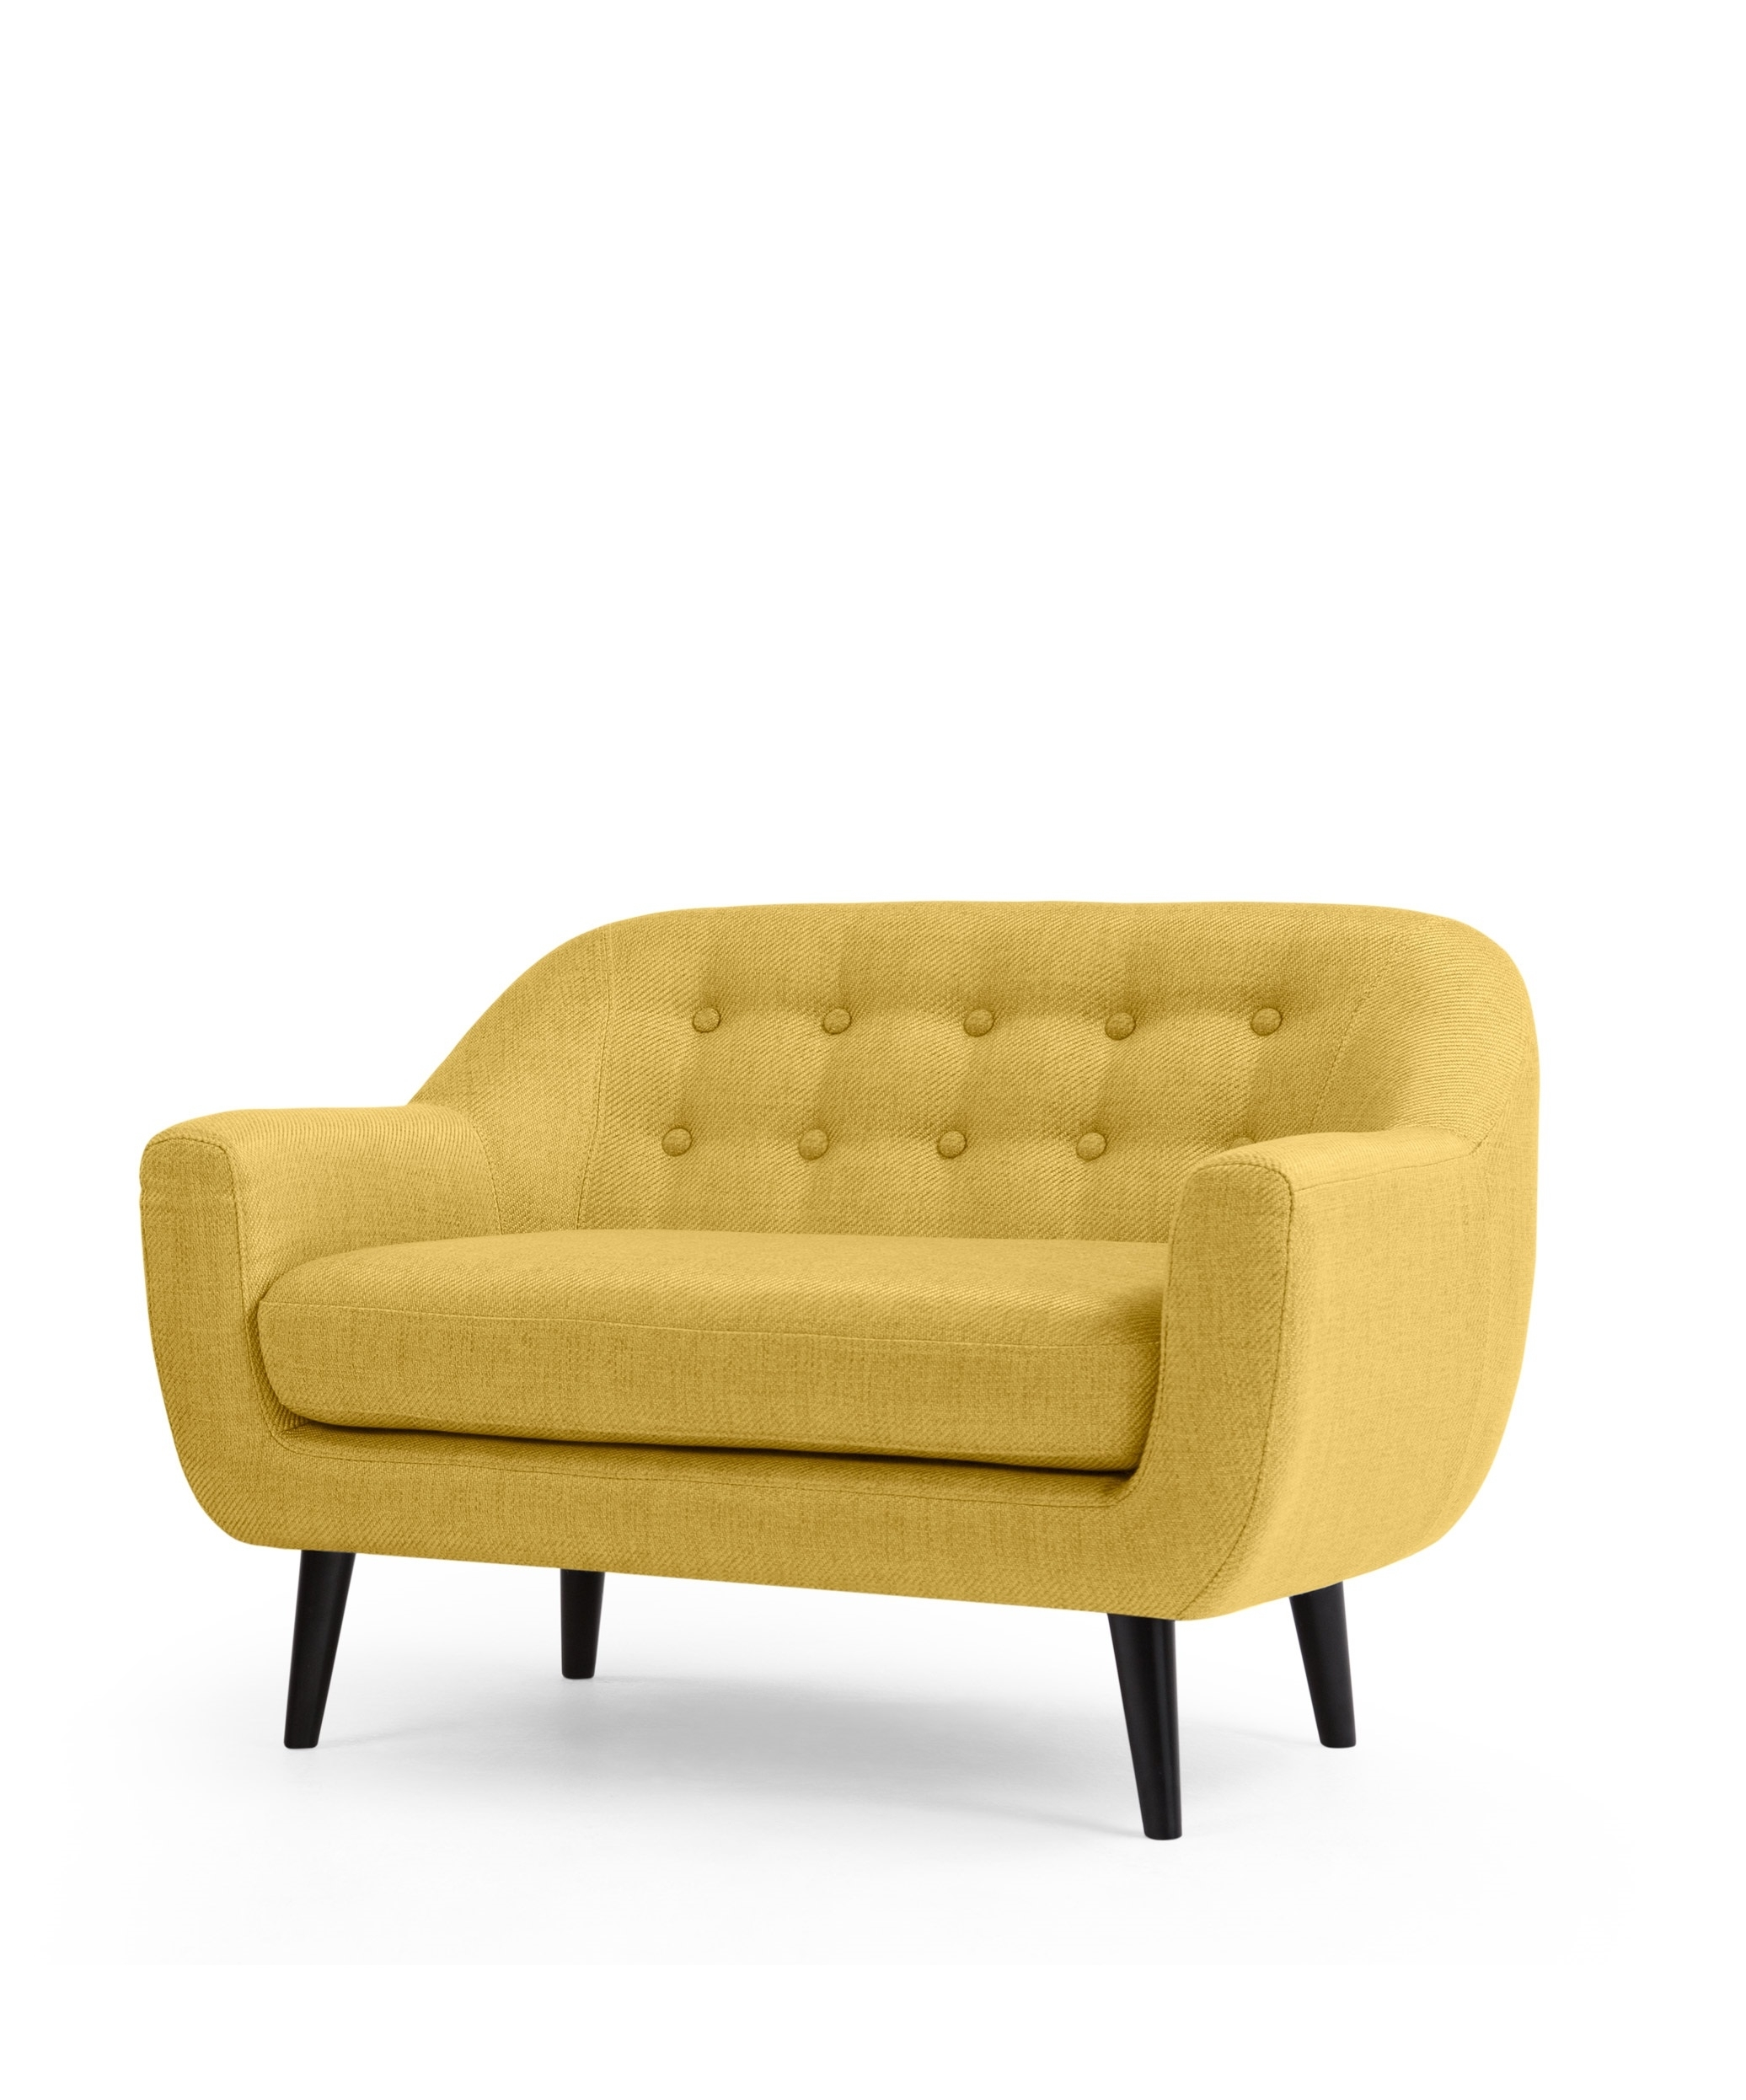 The Mini Ritchie 2 Seater Sofa, In Ochre Yellow (View 9 of 10)